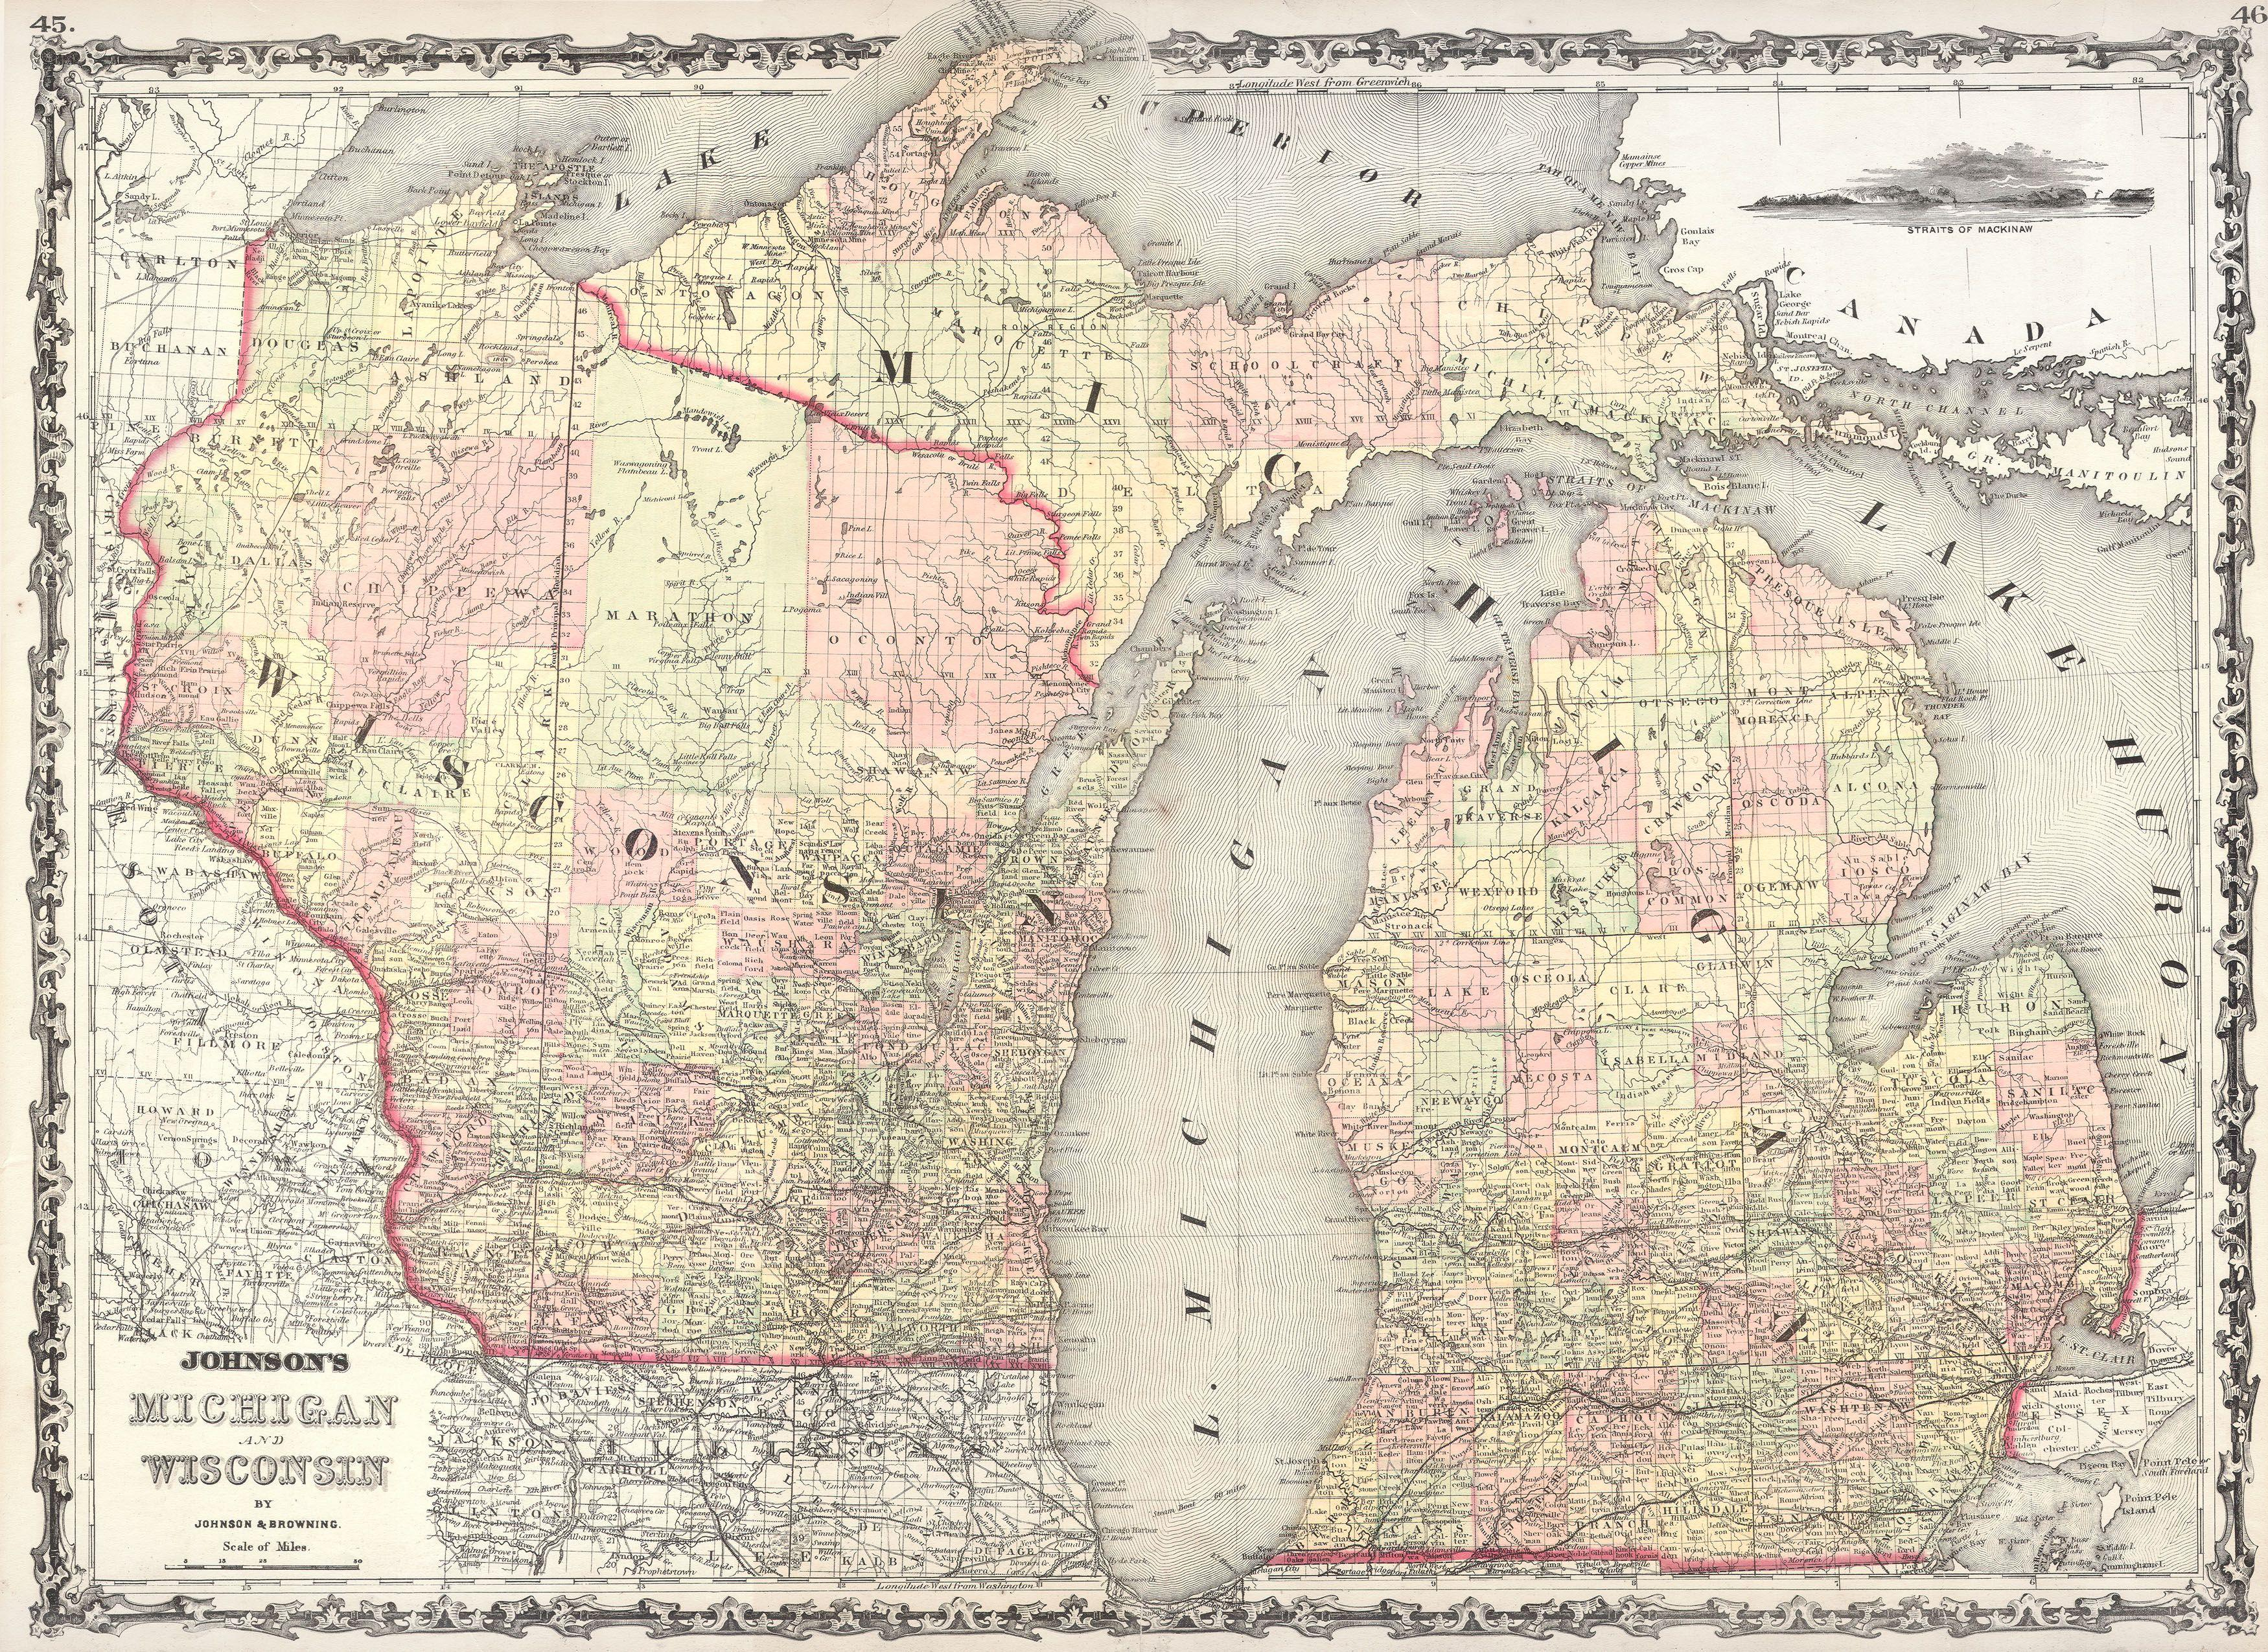 mackinaw city mi map with File 1862 Johnson Map Of Wisconsin And Michigan   Geographicus   Miwi J 62 on MackinacIslandDowntownMap likewise Mackinac Bridge besides Index old also 4844690491 together with Michigan.